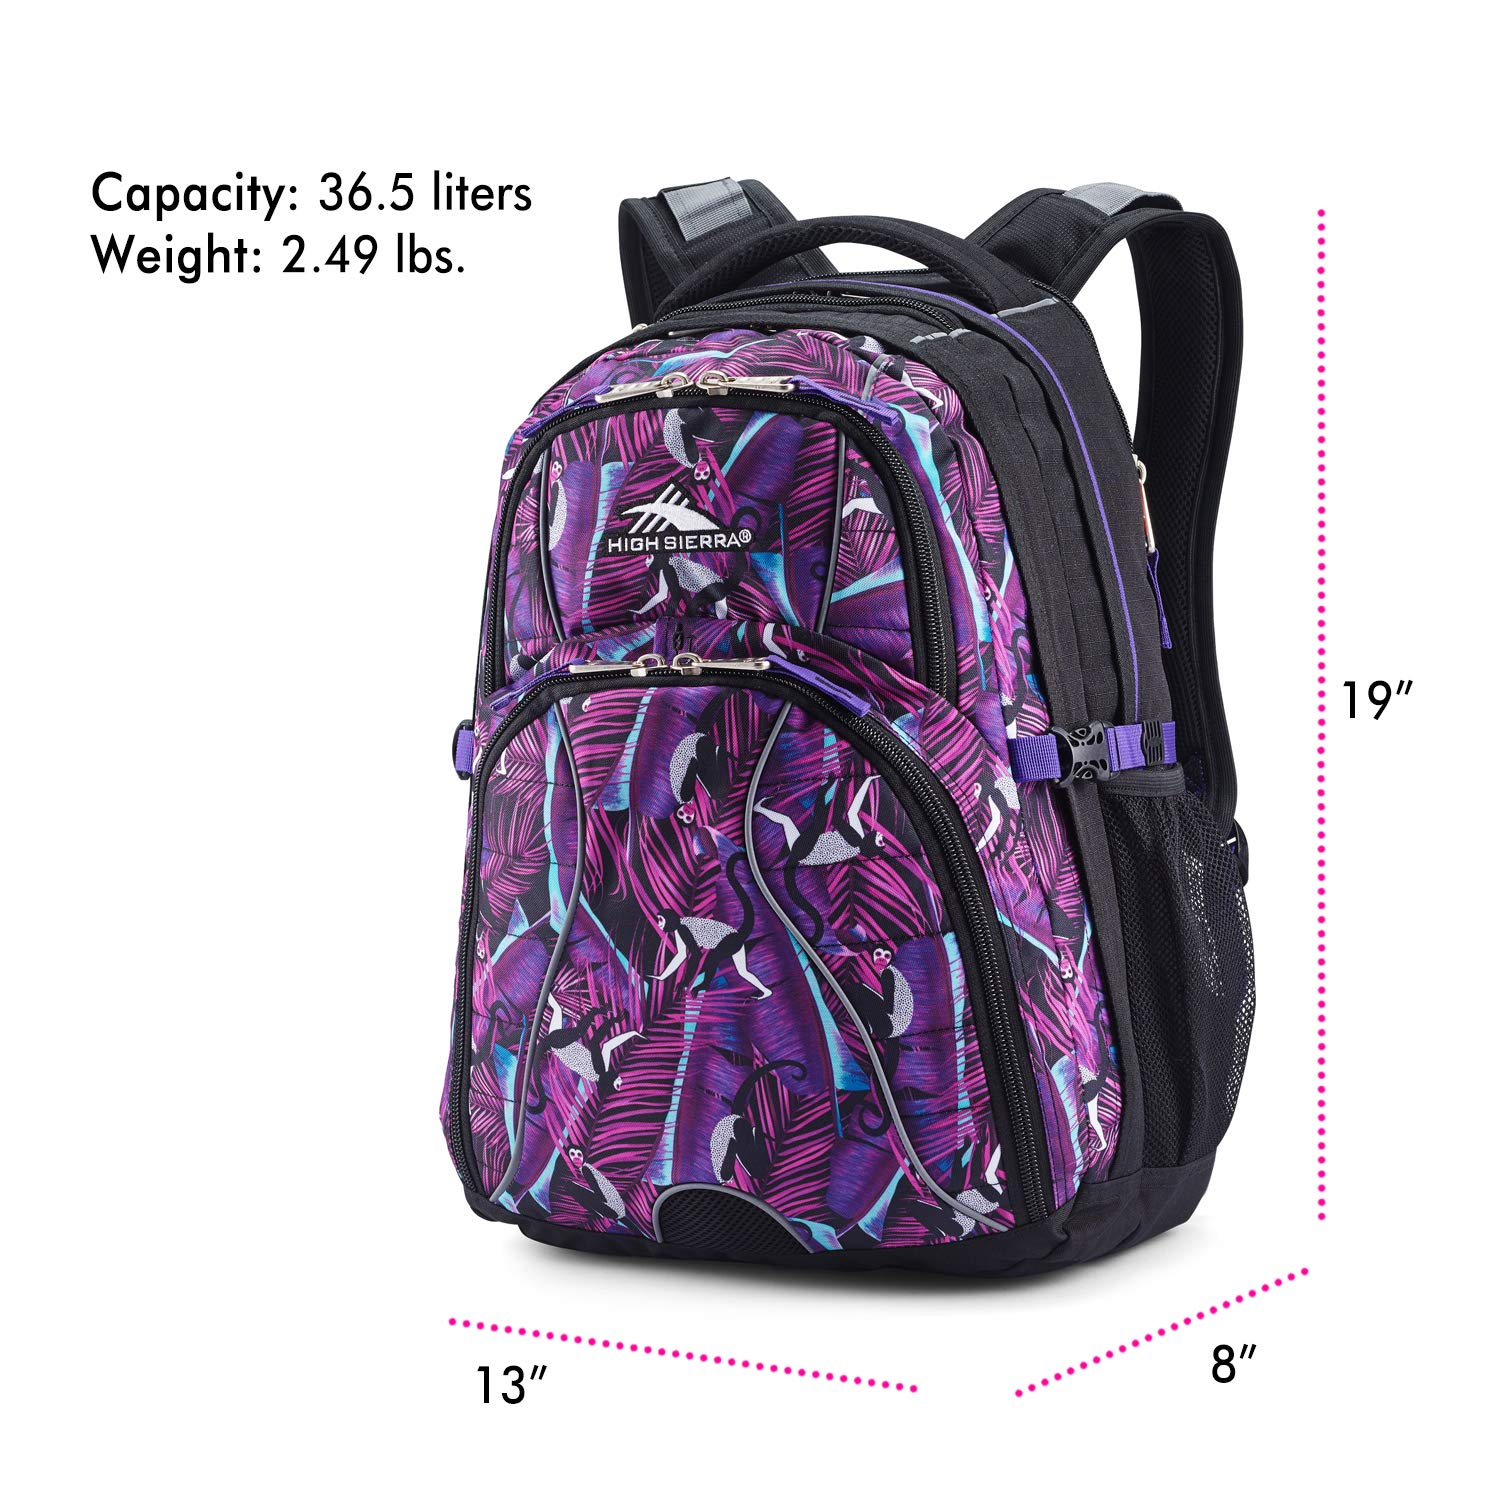 High Sierra Swerve Laptop Backpack, 17-inch Laptop Backpack for High School or College, Ideal Gaming Laptop Backpack, Large Compartment Student Laptop Backpack with Organizer Pocket by High Sierra (Image #6)